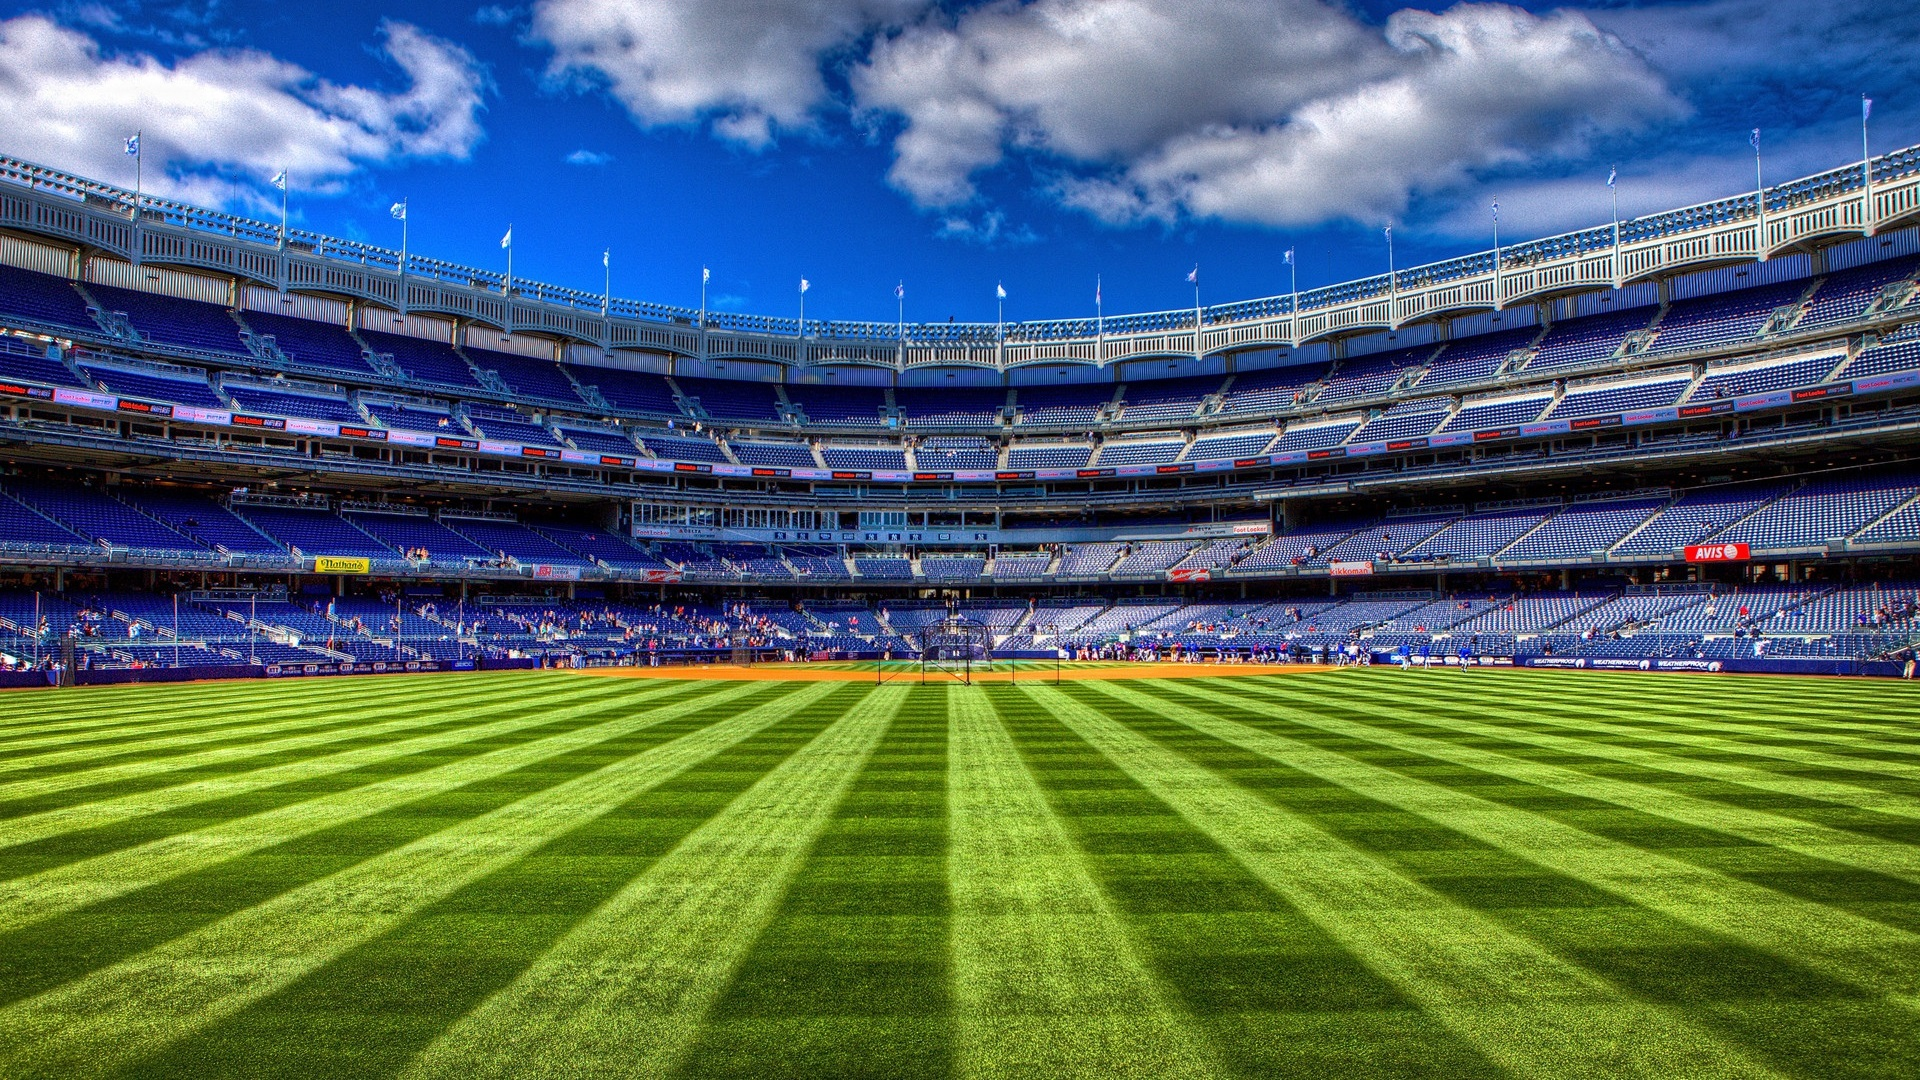 Wallpaper Sport Stadiums Football Lawn 1920x1200 Hd Picture Image